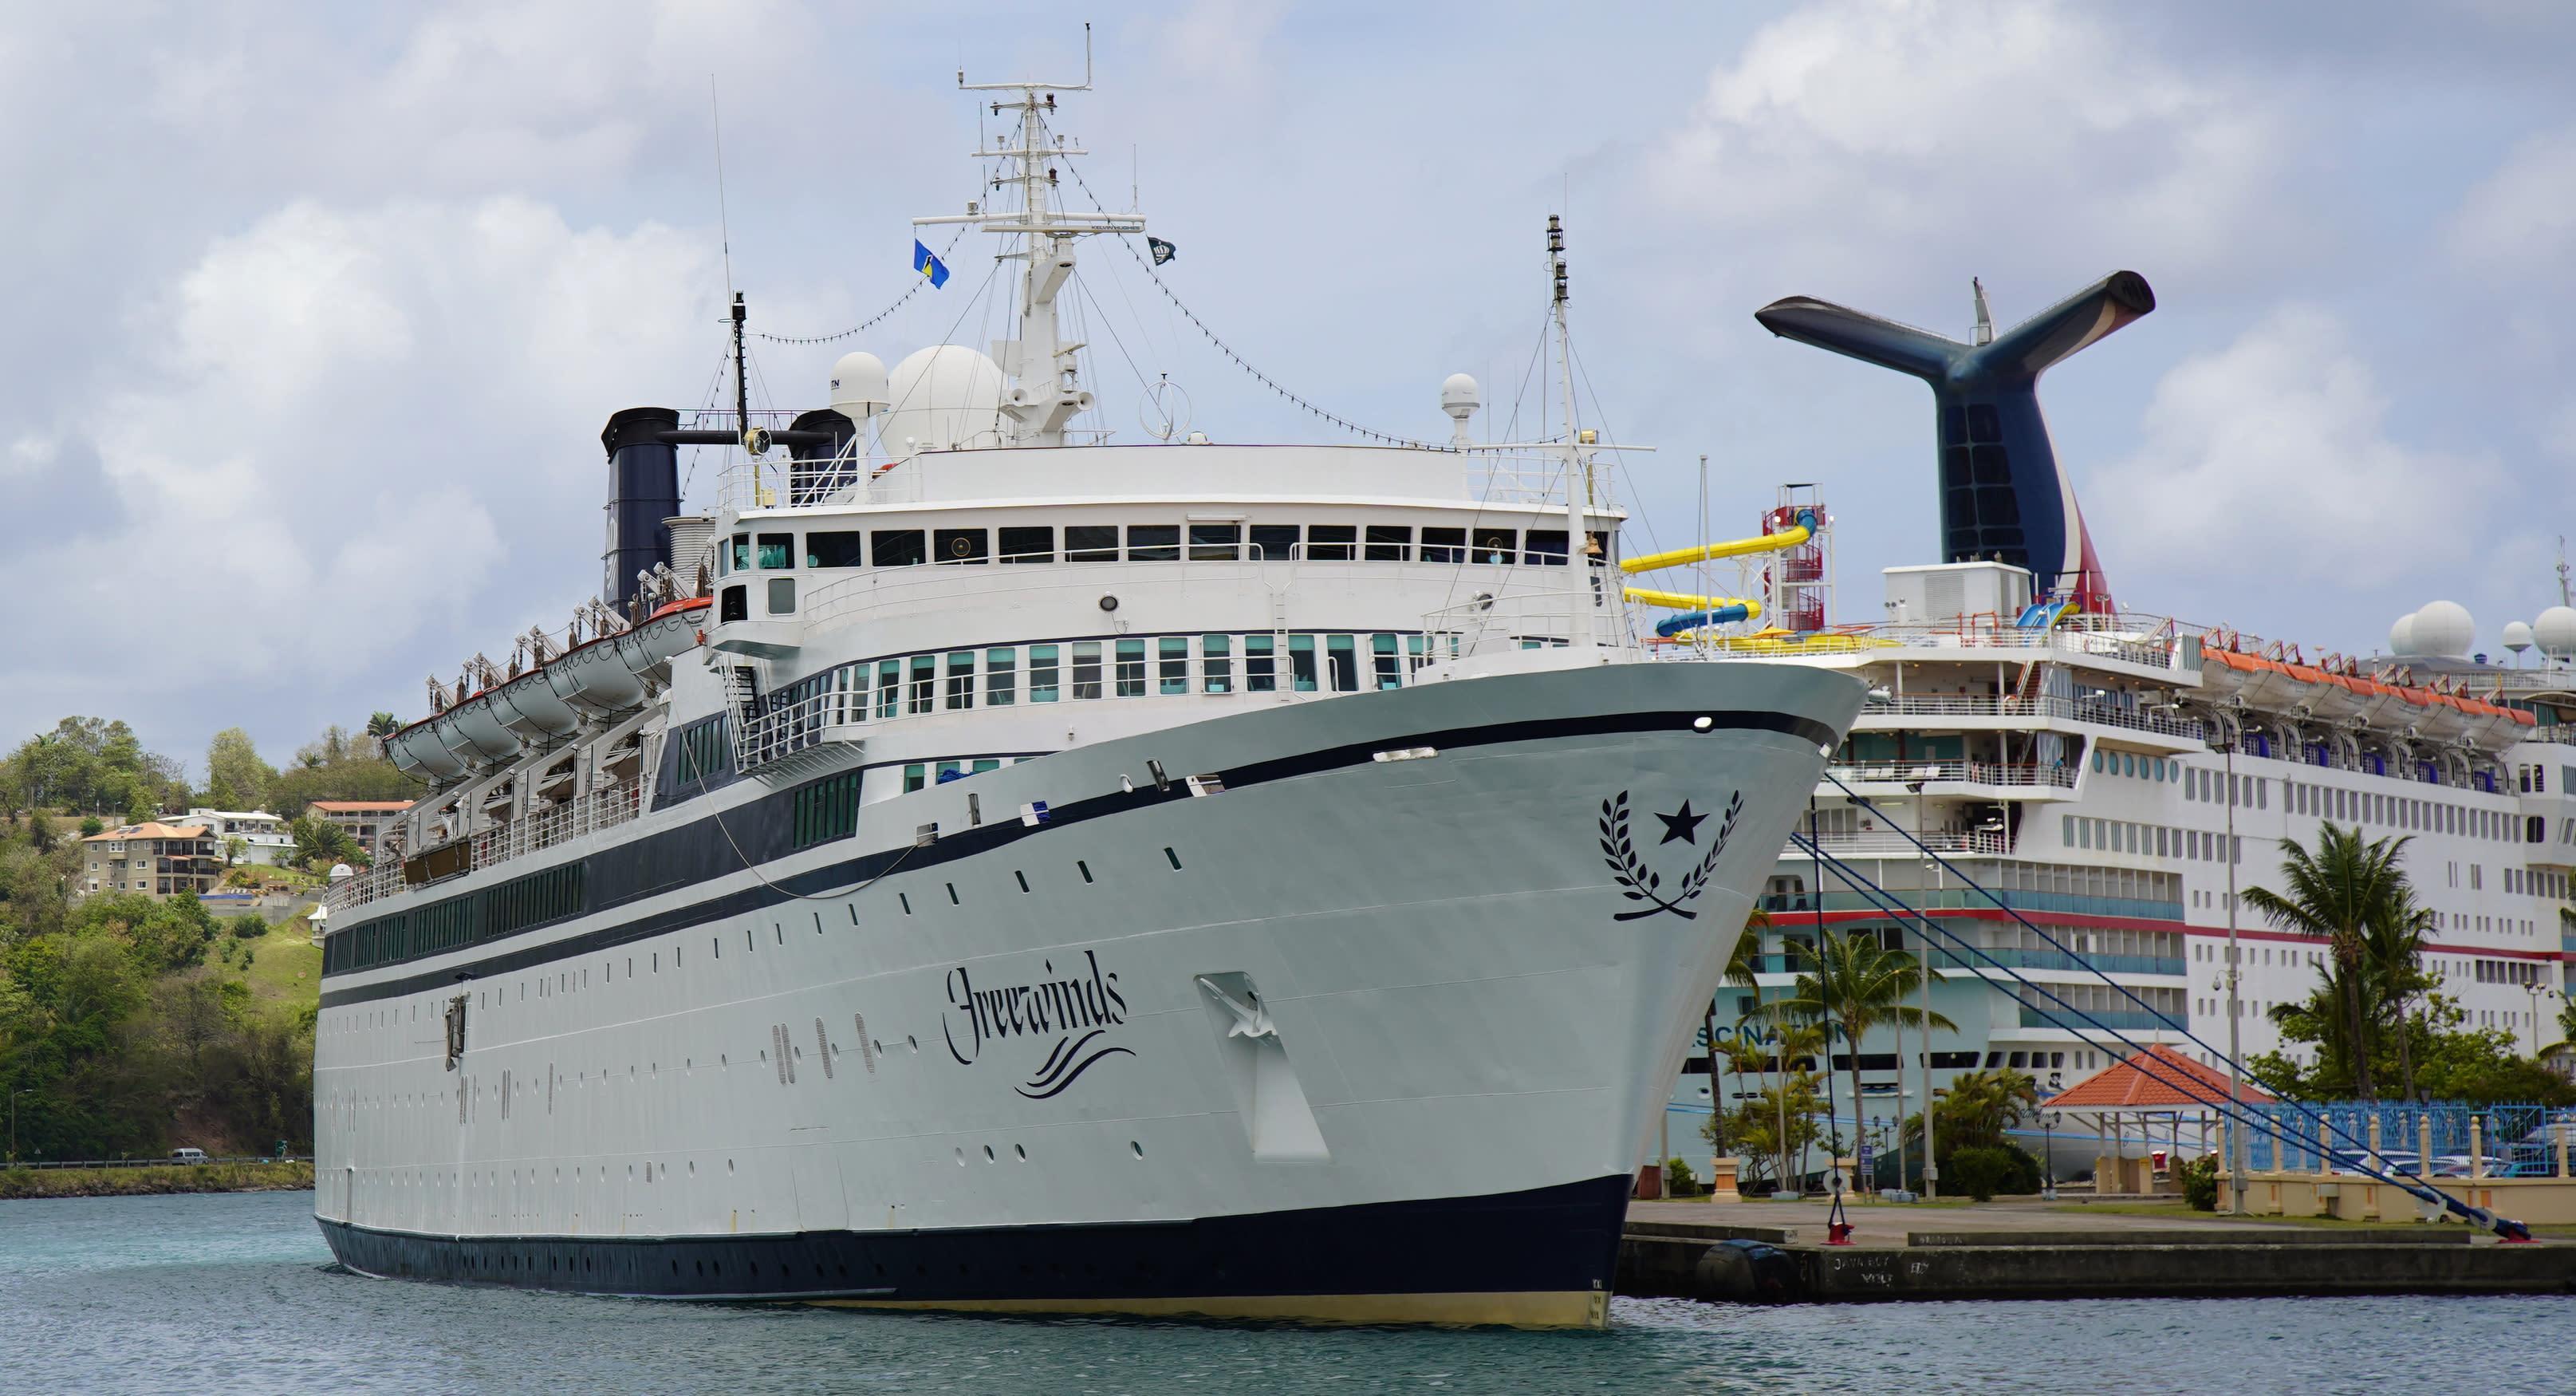 Curacao to quarantine cruise ship for measles case